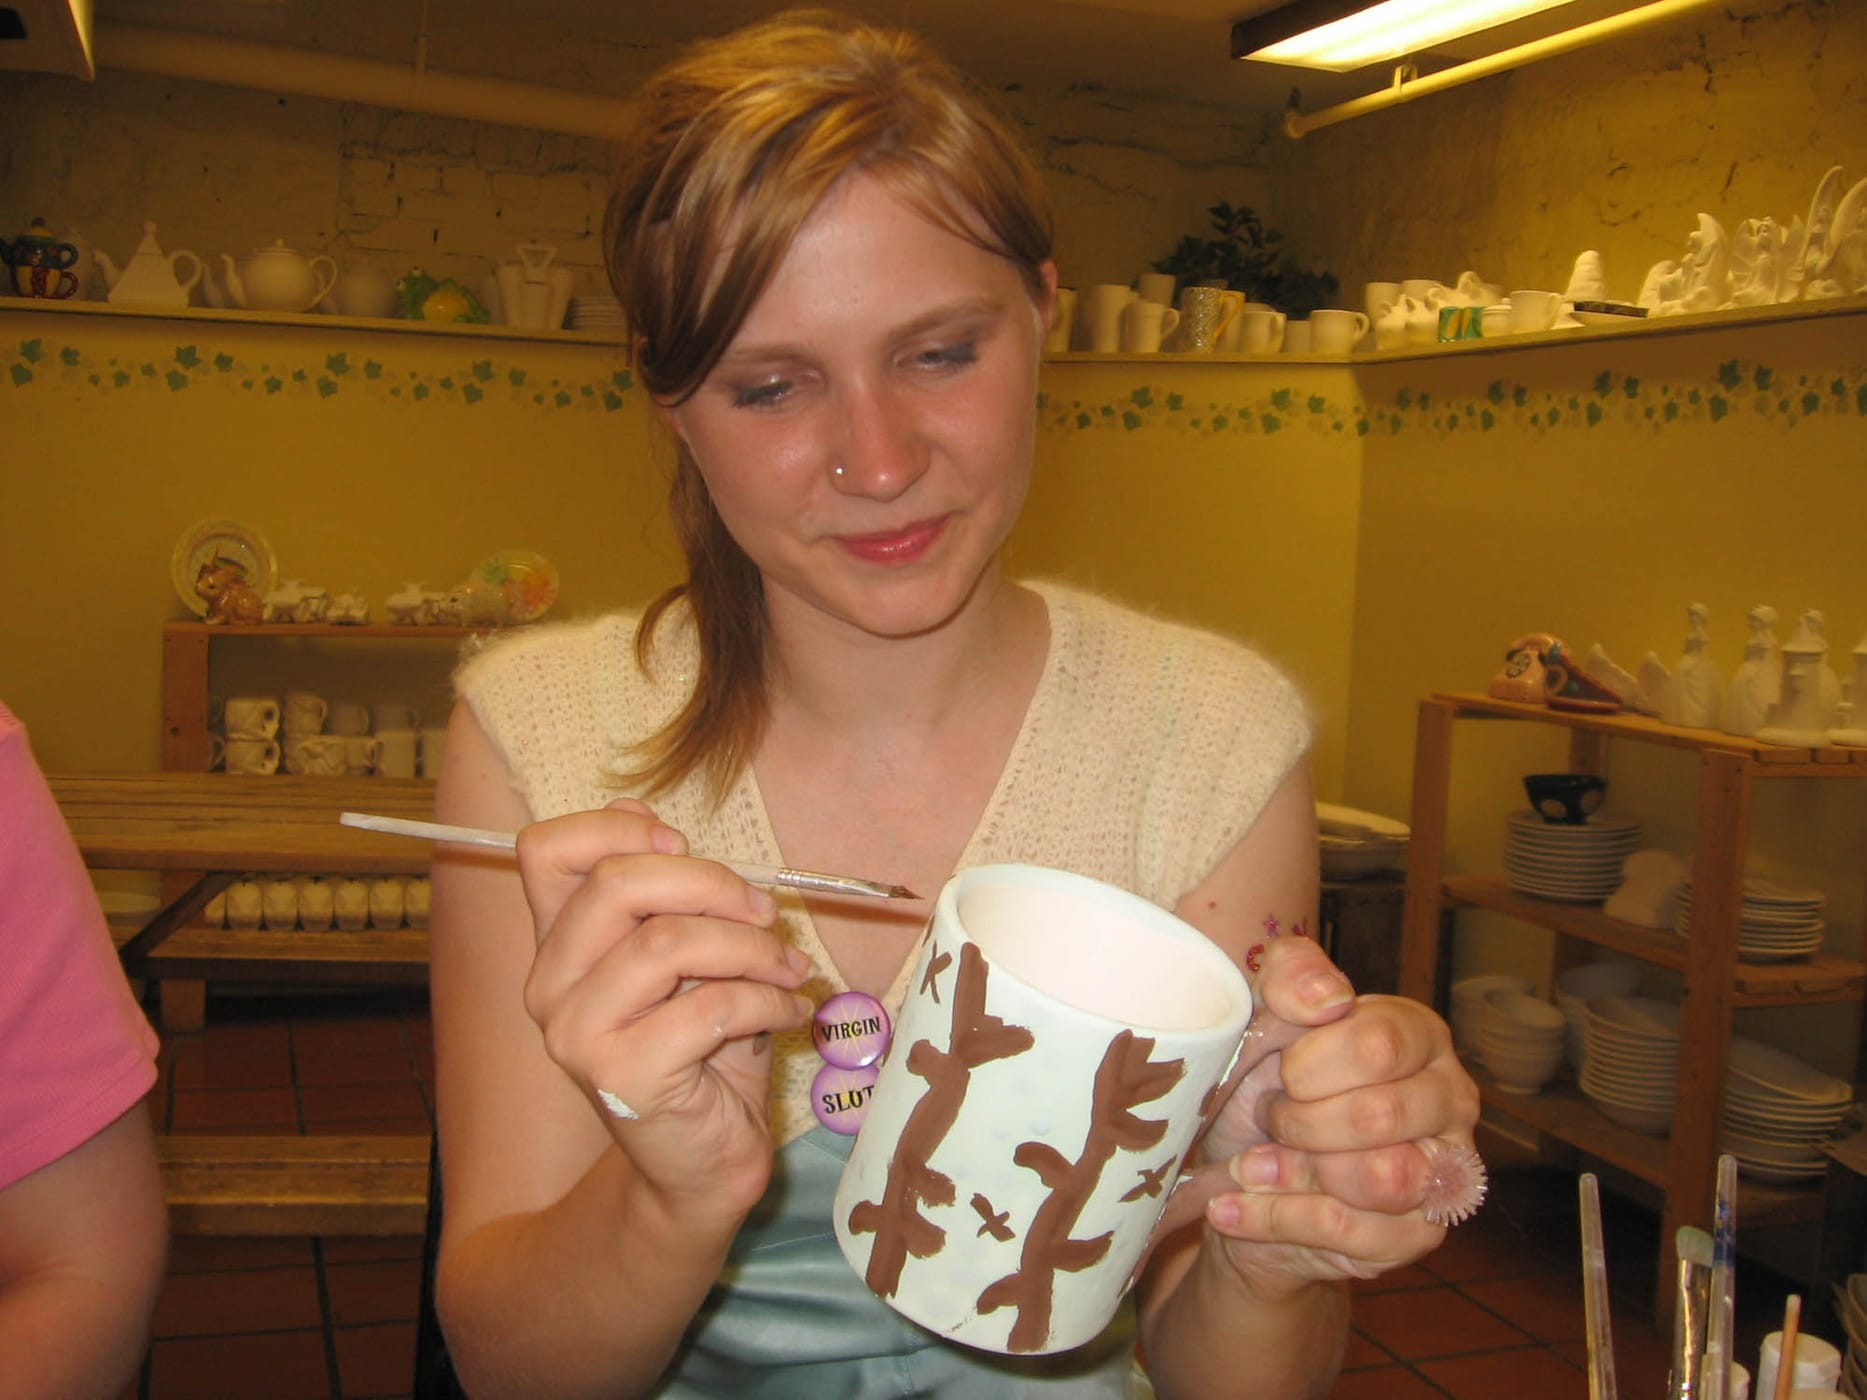 Painting a mug at a bachelorette party